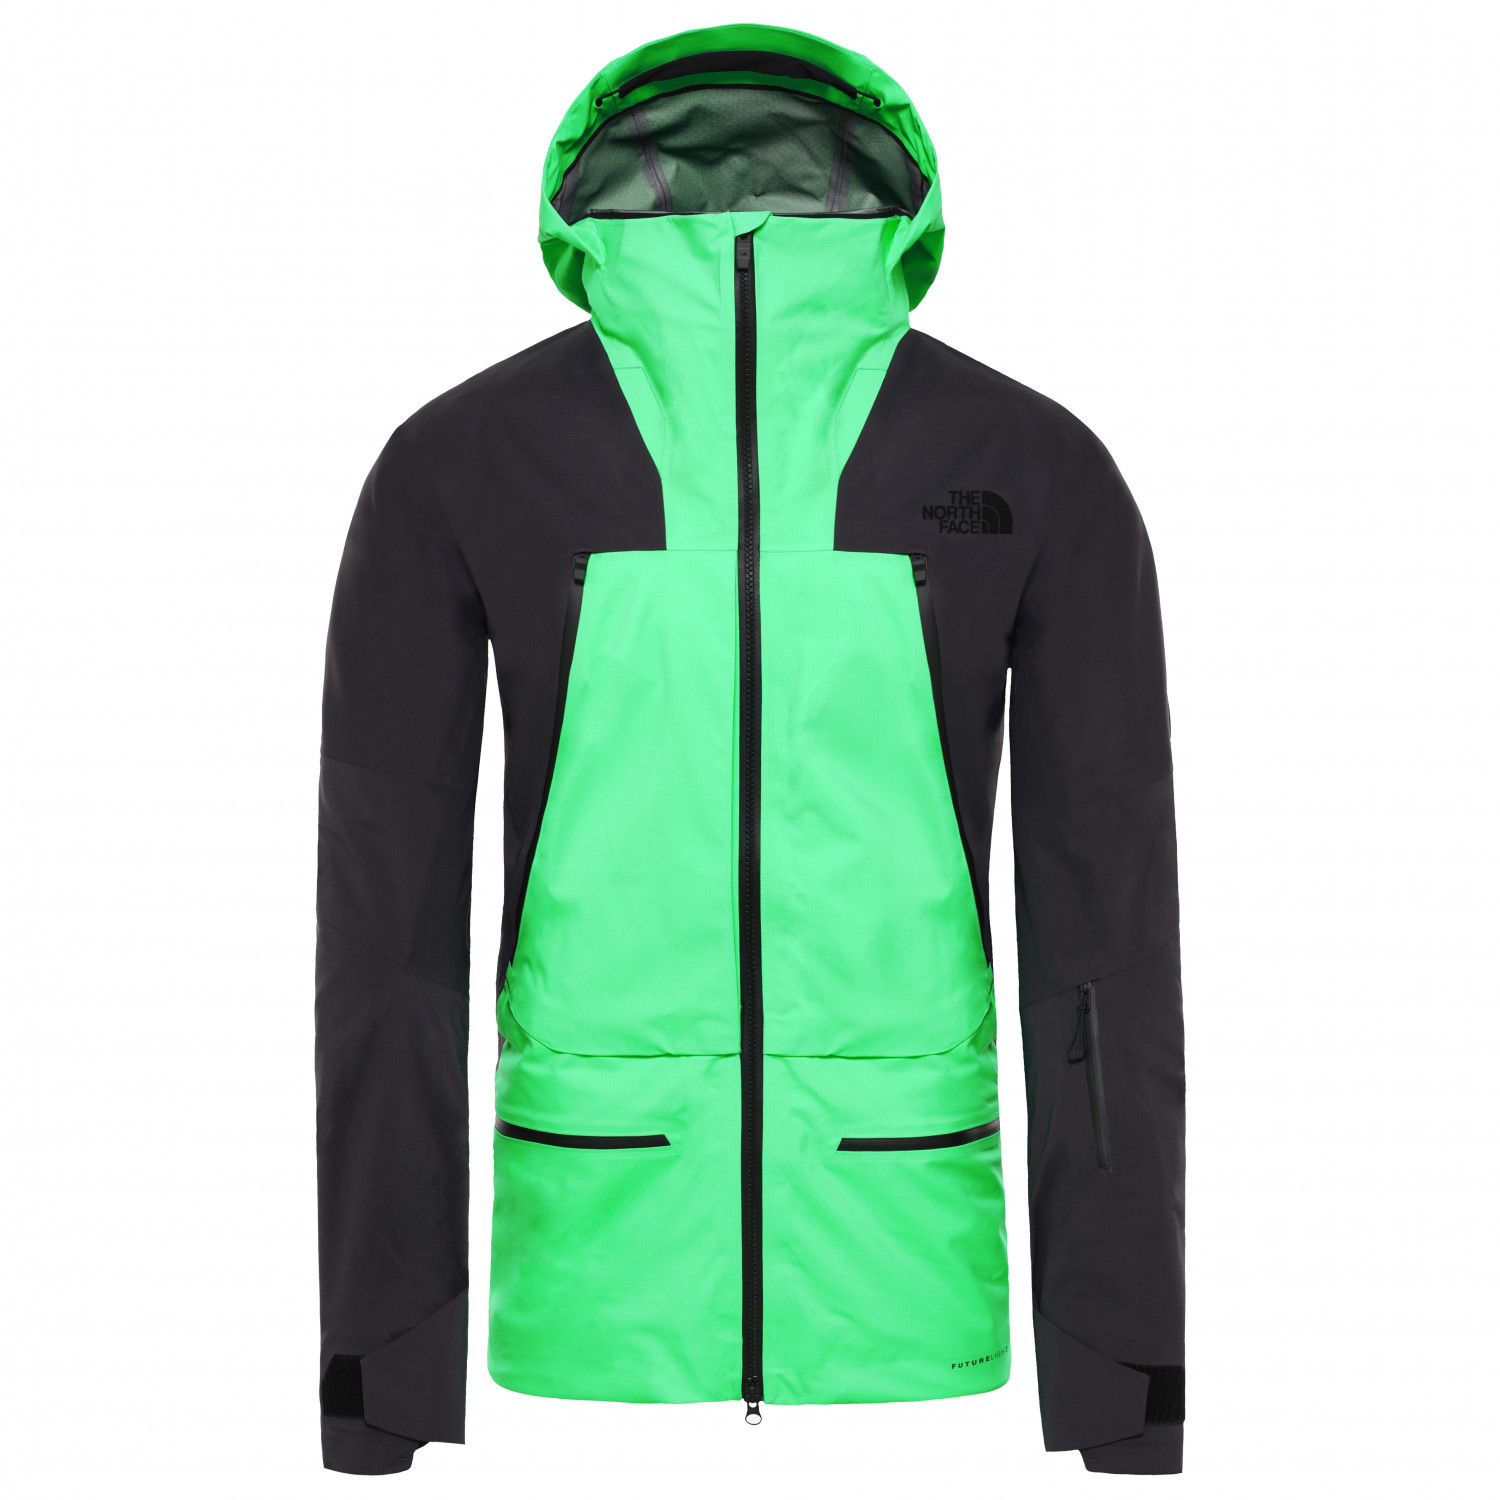 Purist Jacket – The North Face | Prime Snowboarding